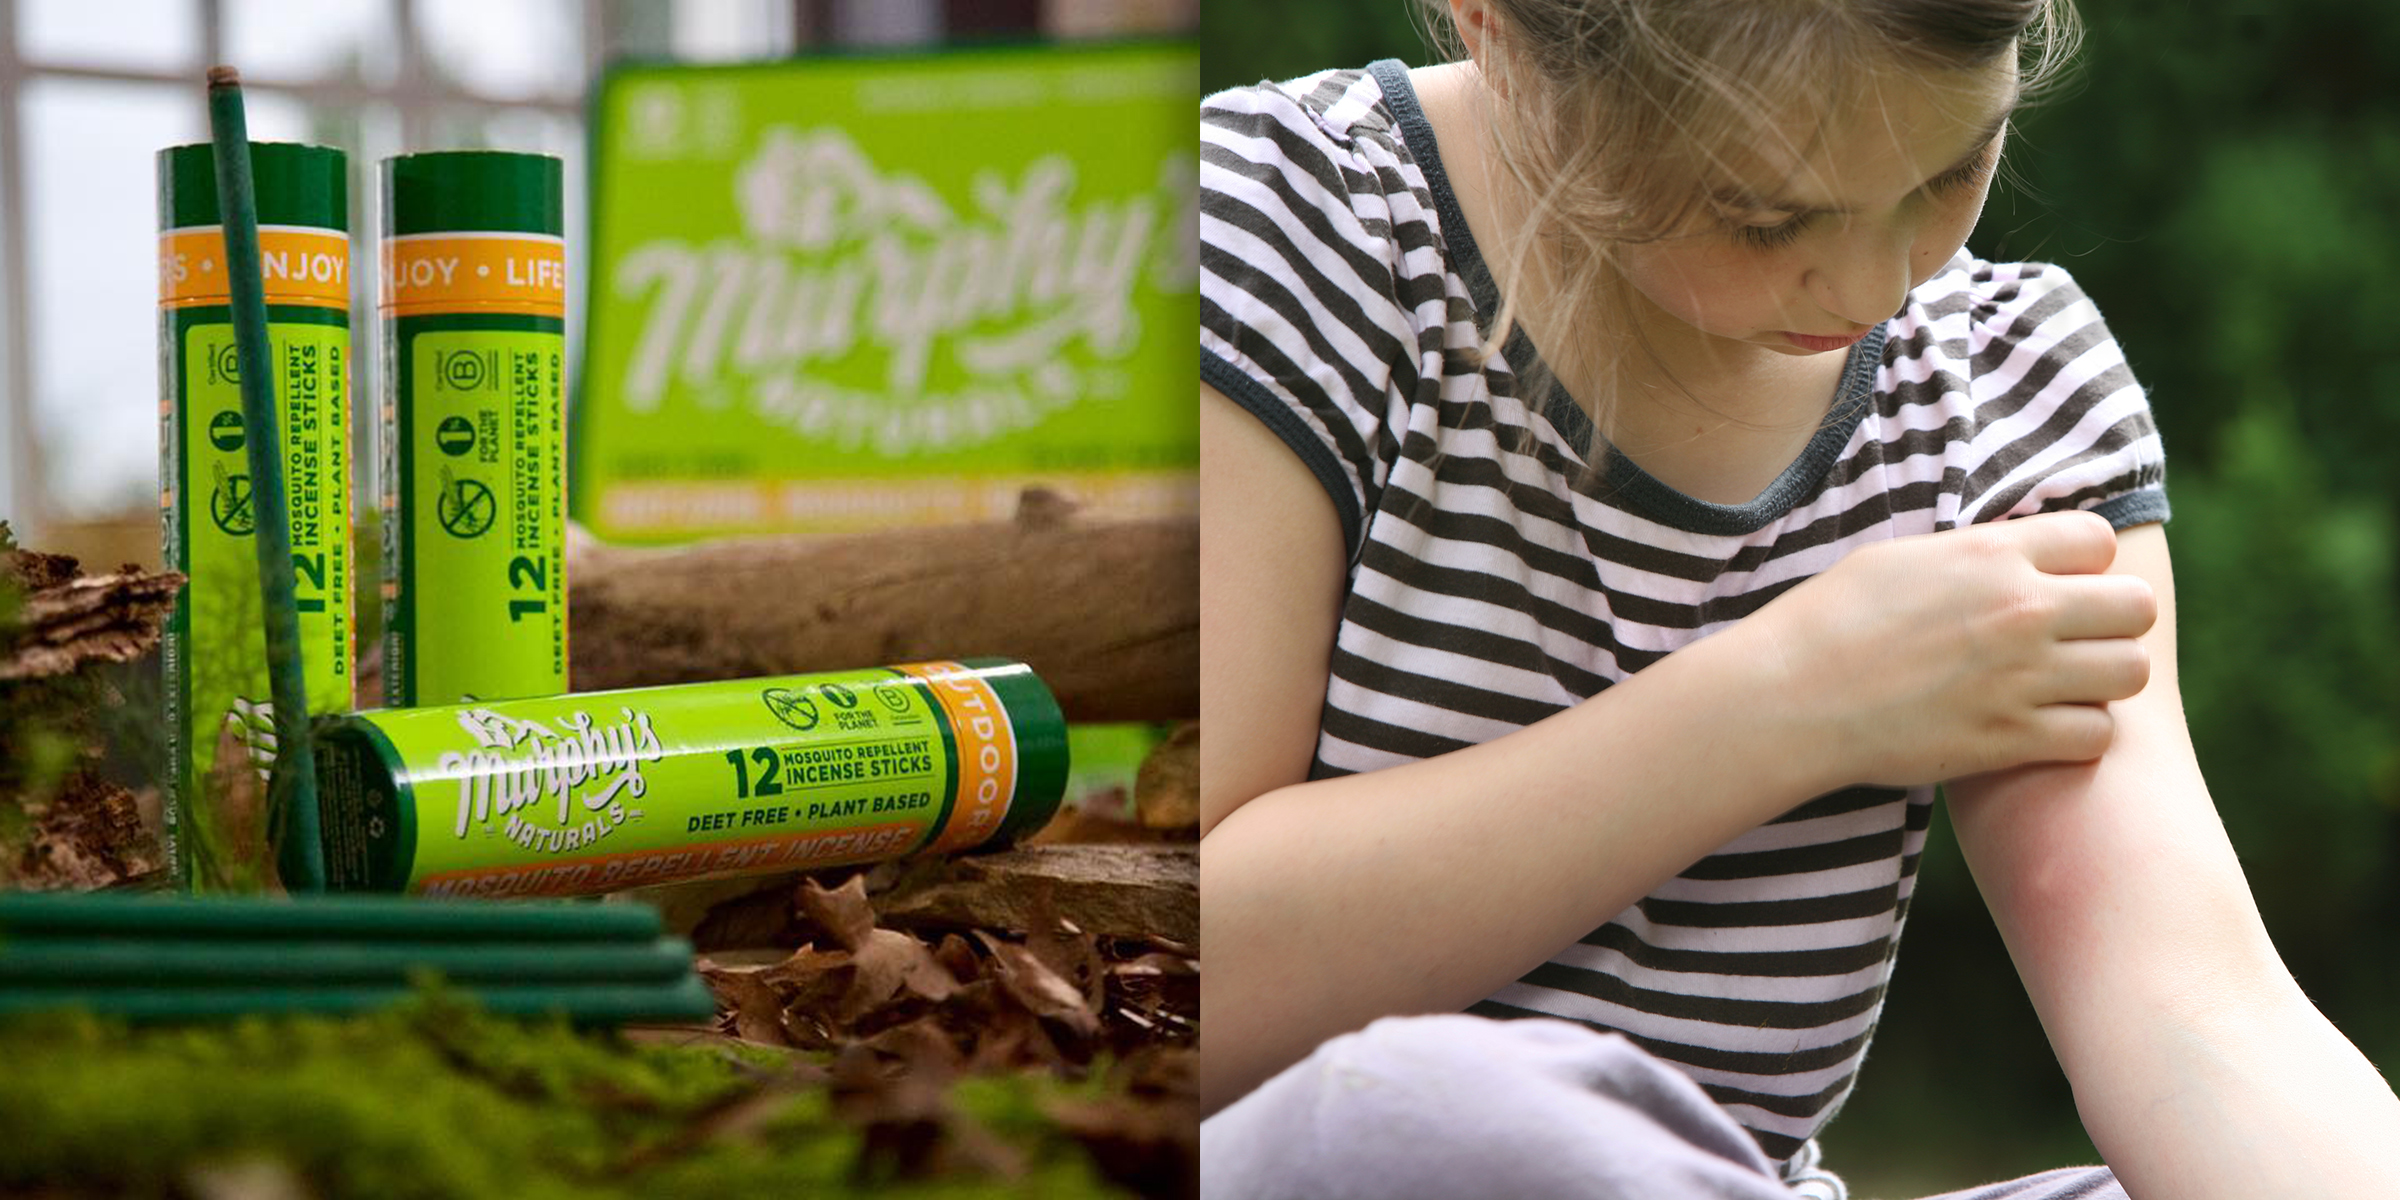 These Mosquito Sticks Are The New Mess Free Way To Repel Bugs